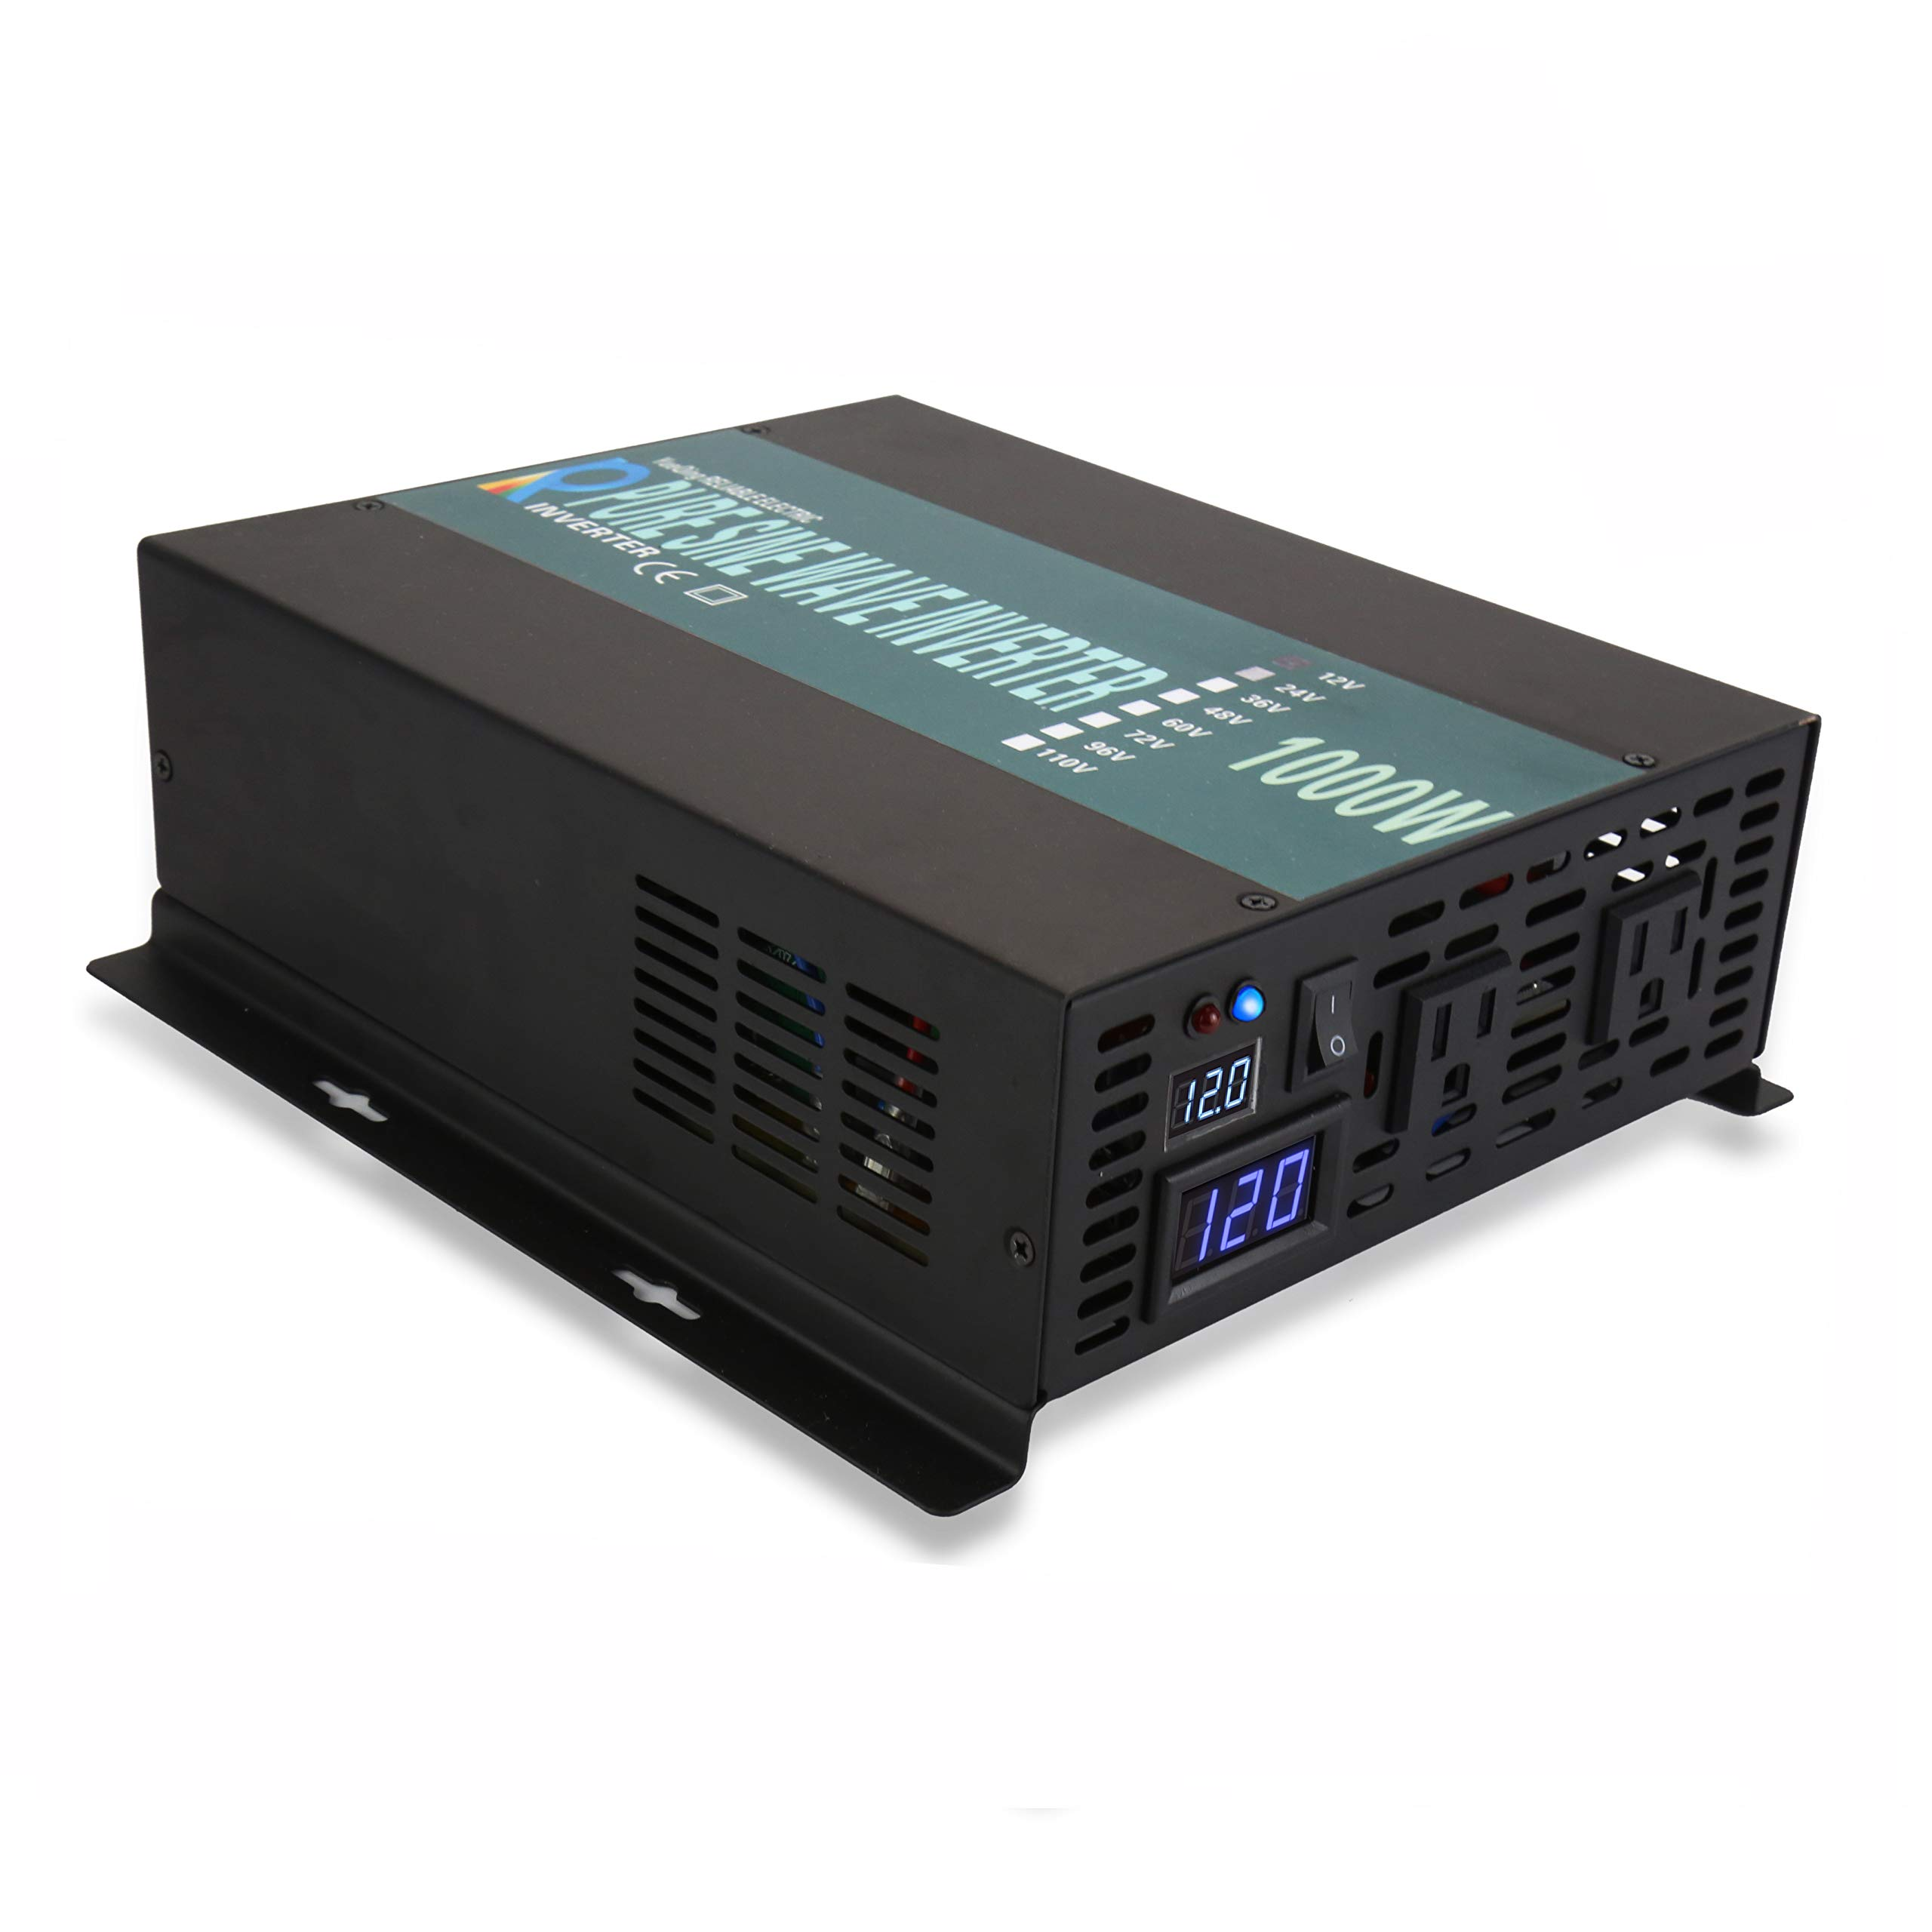 WZRELB 1000W Pure Sine Wave Car Power Inverter 12V DC to 120V AC with 2 AC Outlets, 2 Battery Cables, LED Display, Off Grid, RV, Back Up Power, DC to AC Power Converter (Surge 2000W)